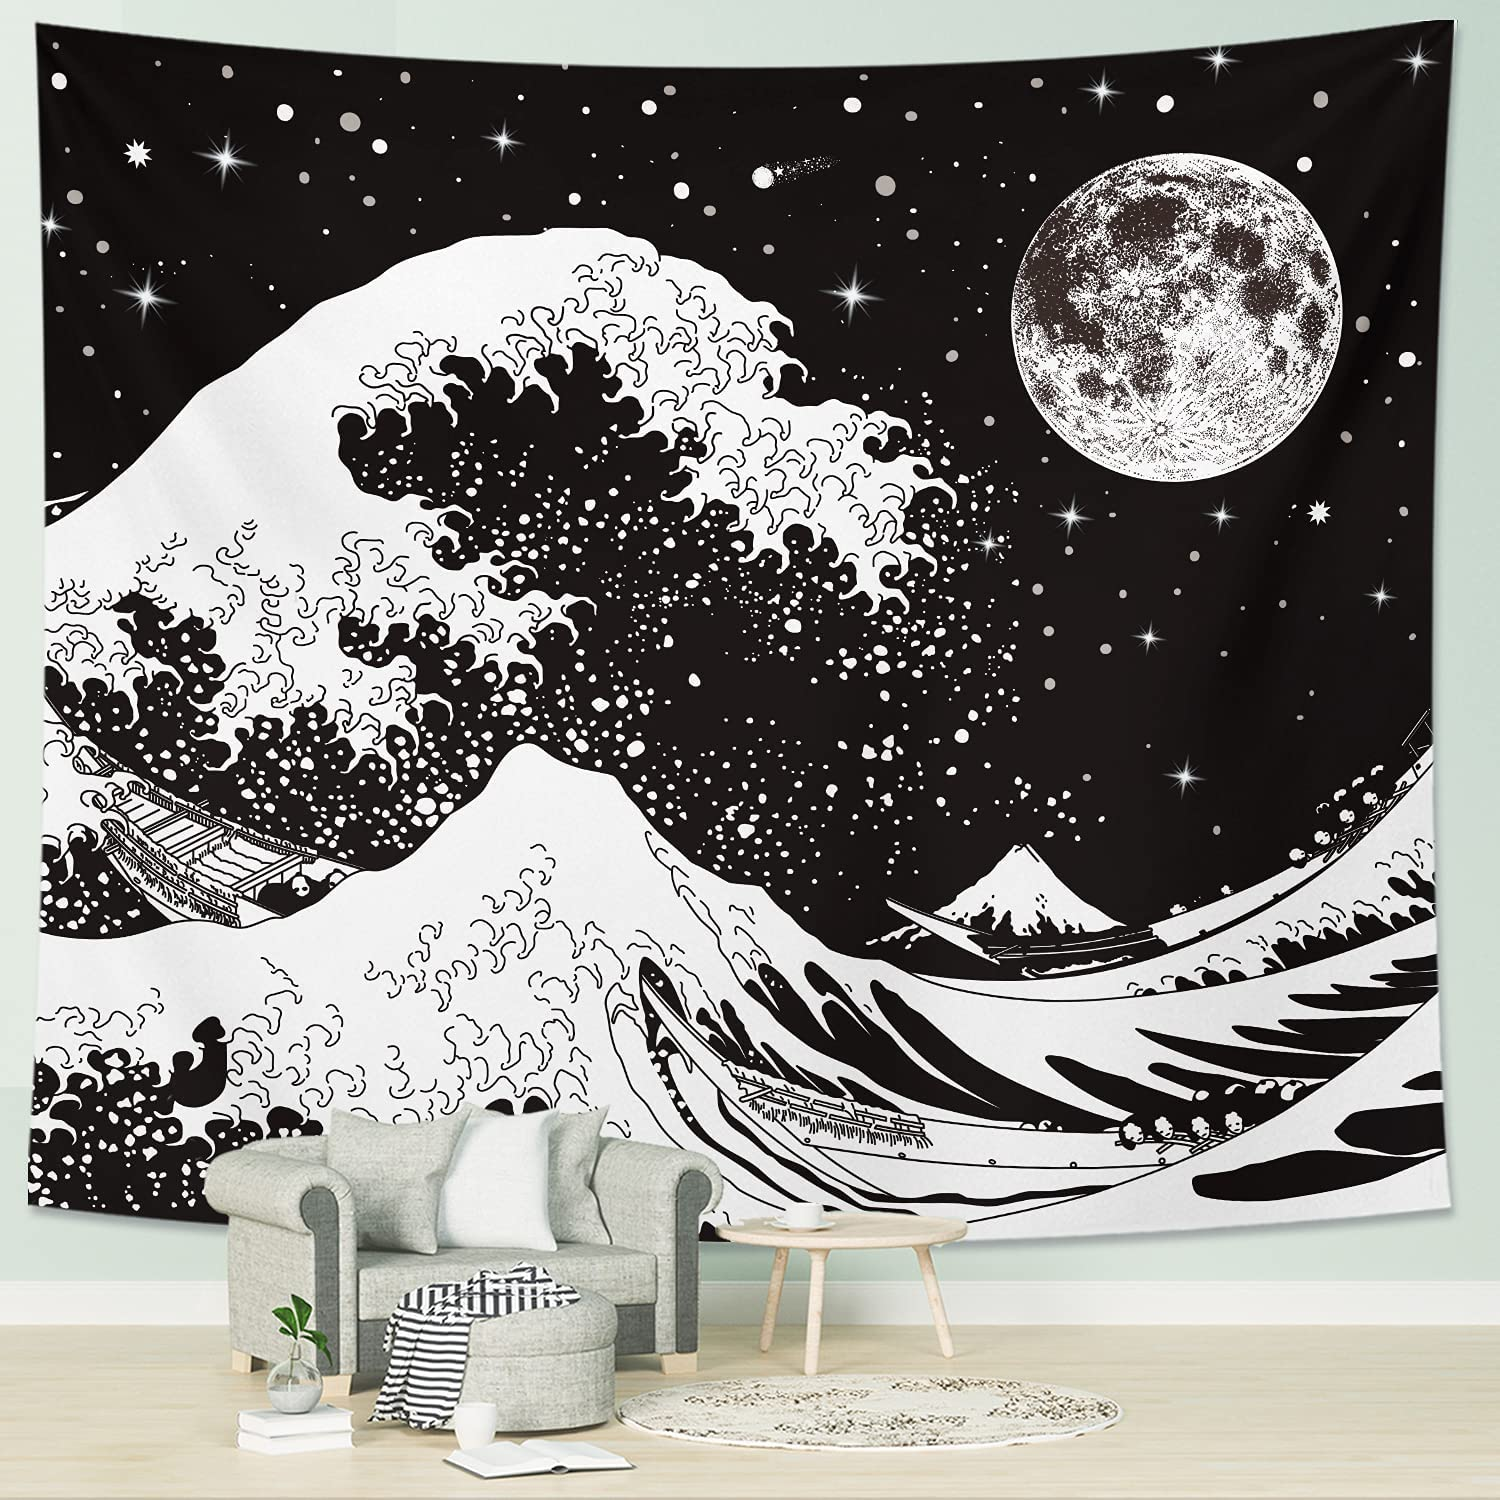 DESIHOM Black and White Tapestry Cool Japanese Tapestry Moon Tapestry for Men Star Space Tapestry Aesthetic Kanagawa Great Wave Tapestry for Bedroom Living Room Dorm Home Decor 59x51 Inch